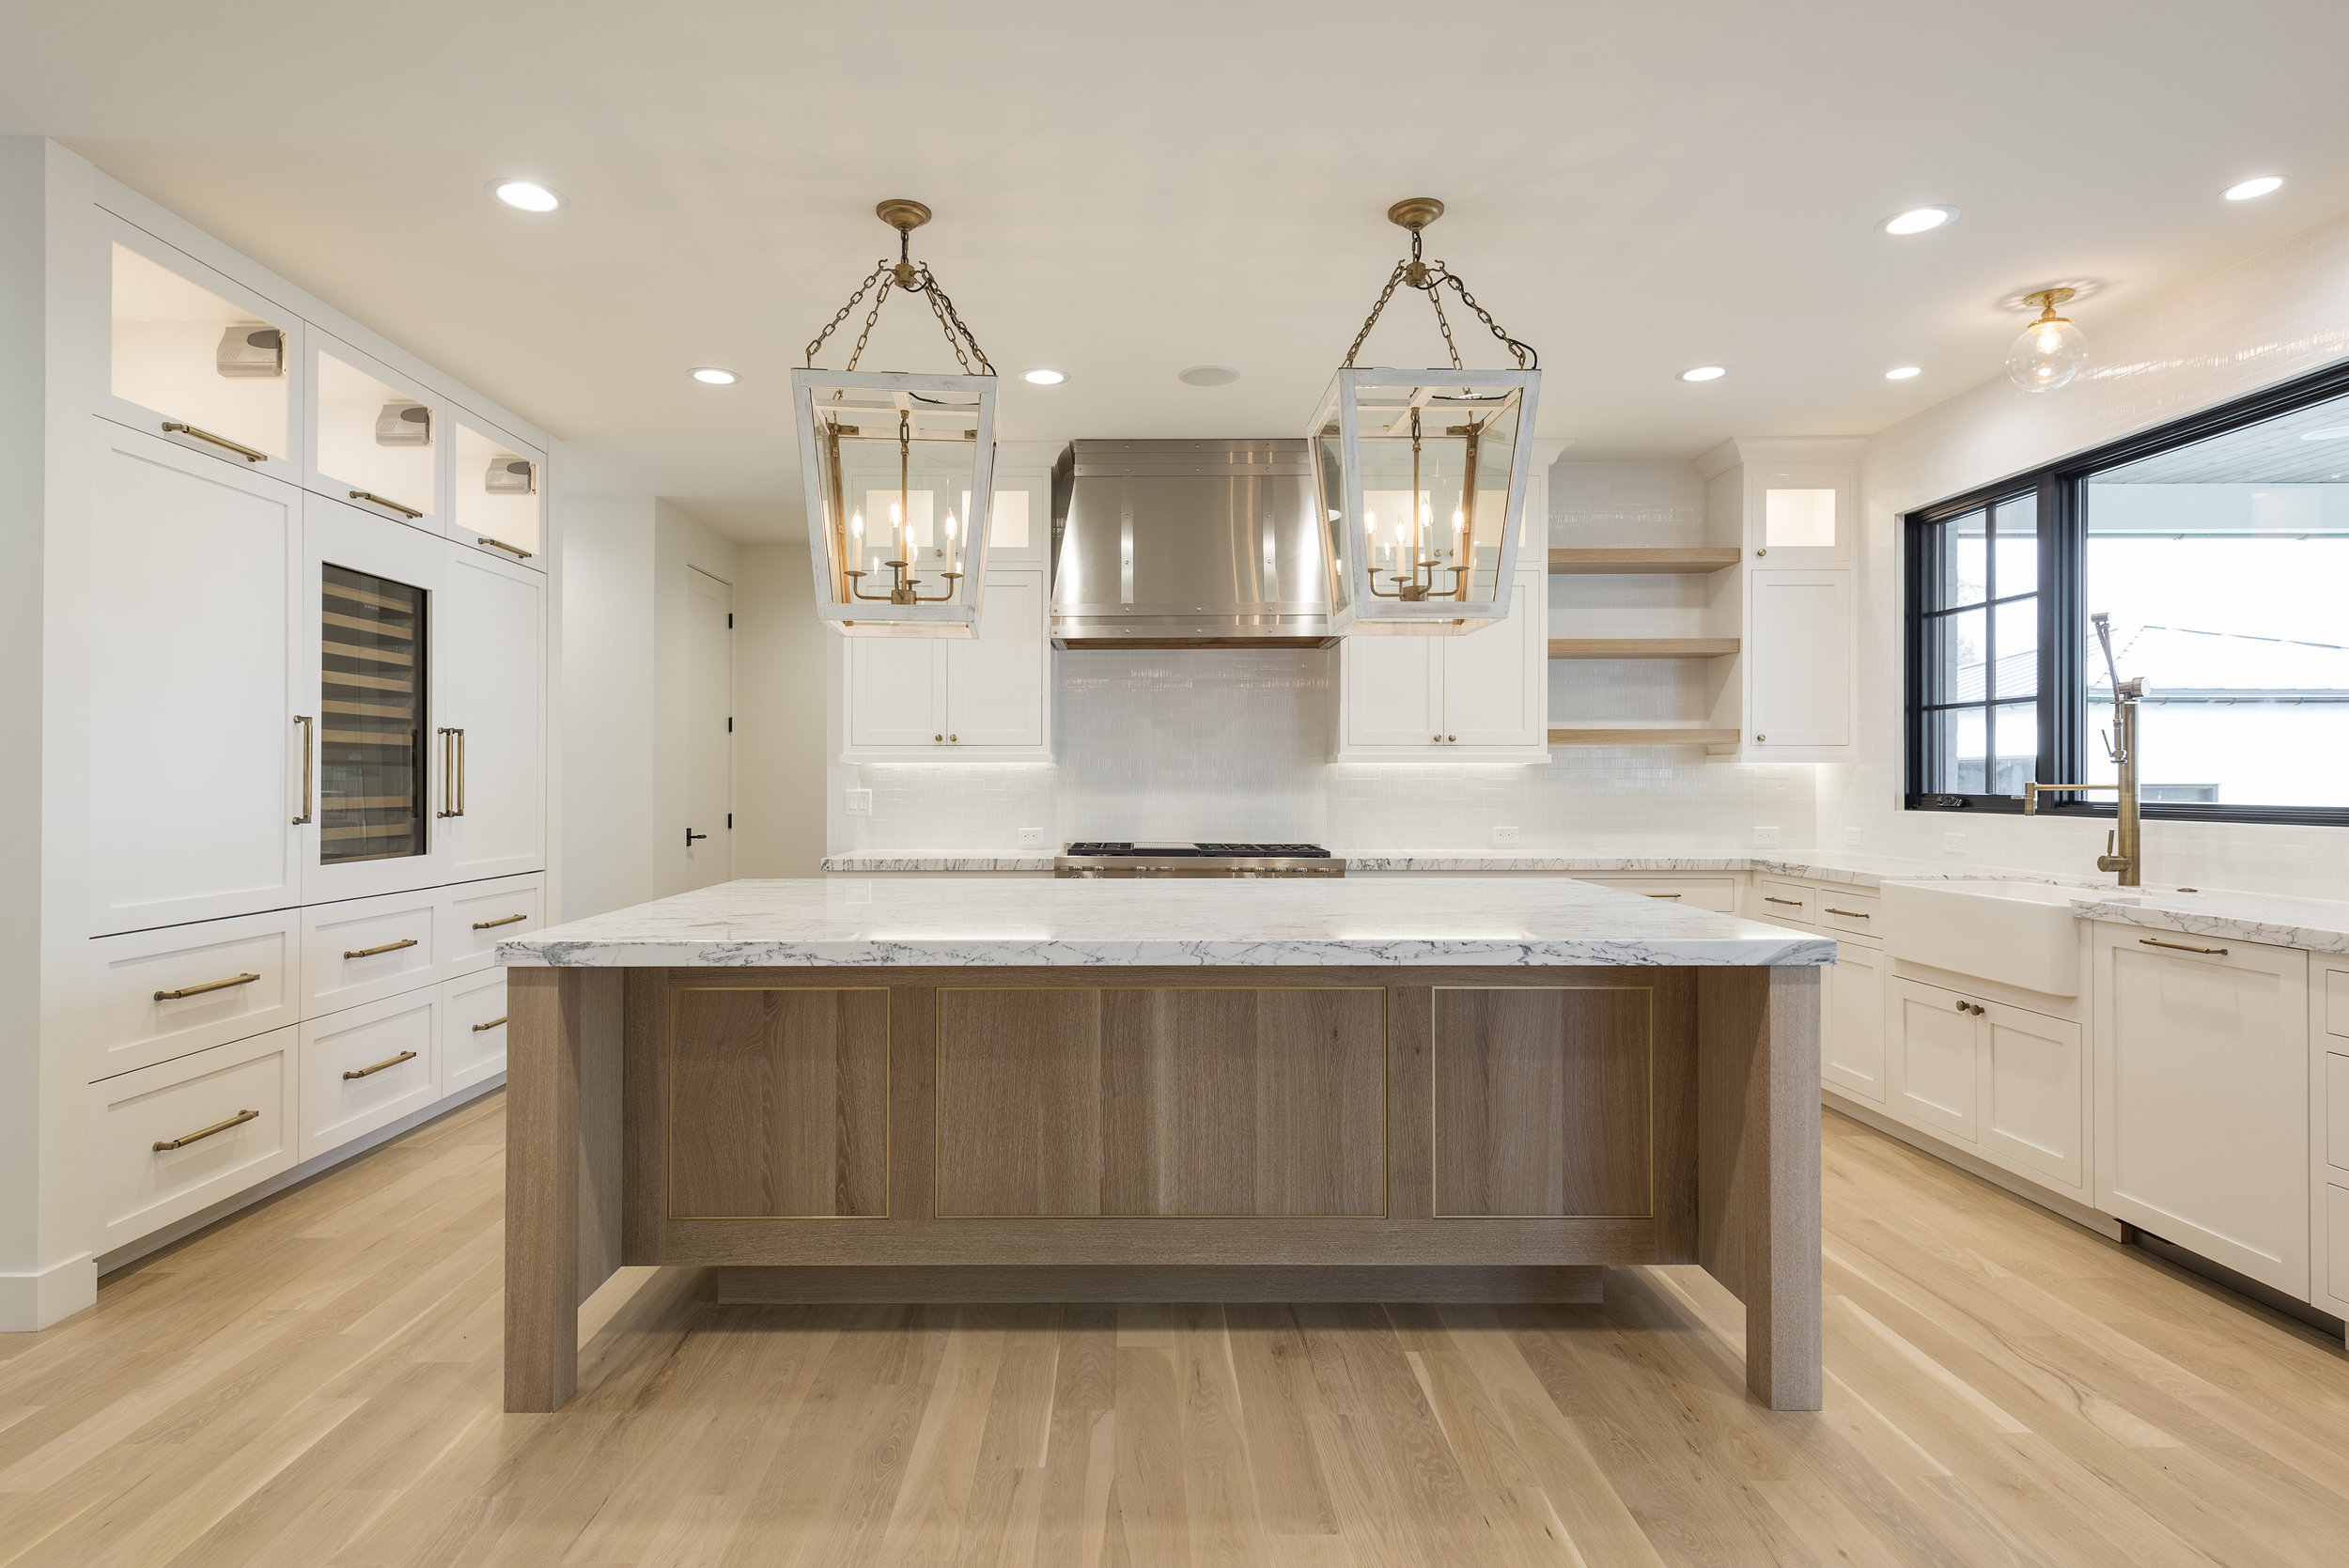 WORKINGWITHOUTHOME-OWNERS - See the spec home we designed in tandem with Caitlin Creer Interiors and Northstar Builders…